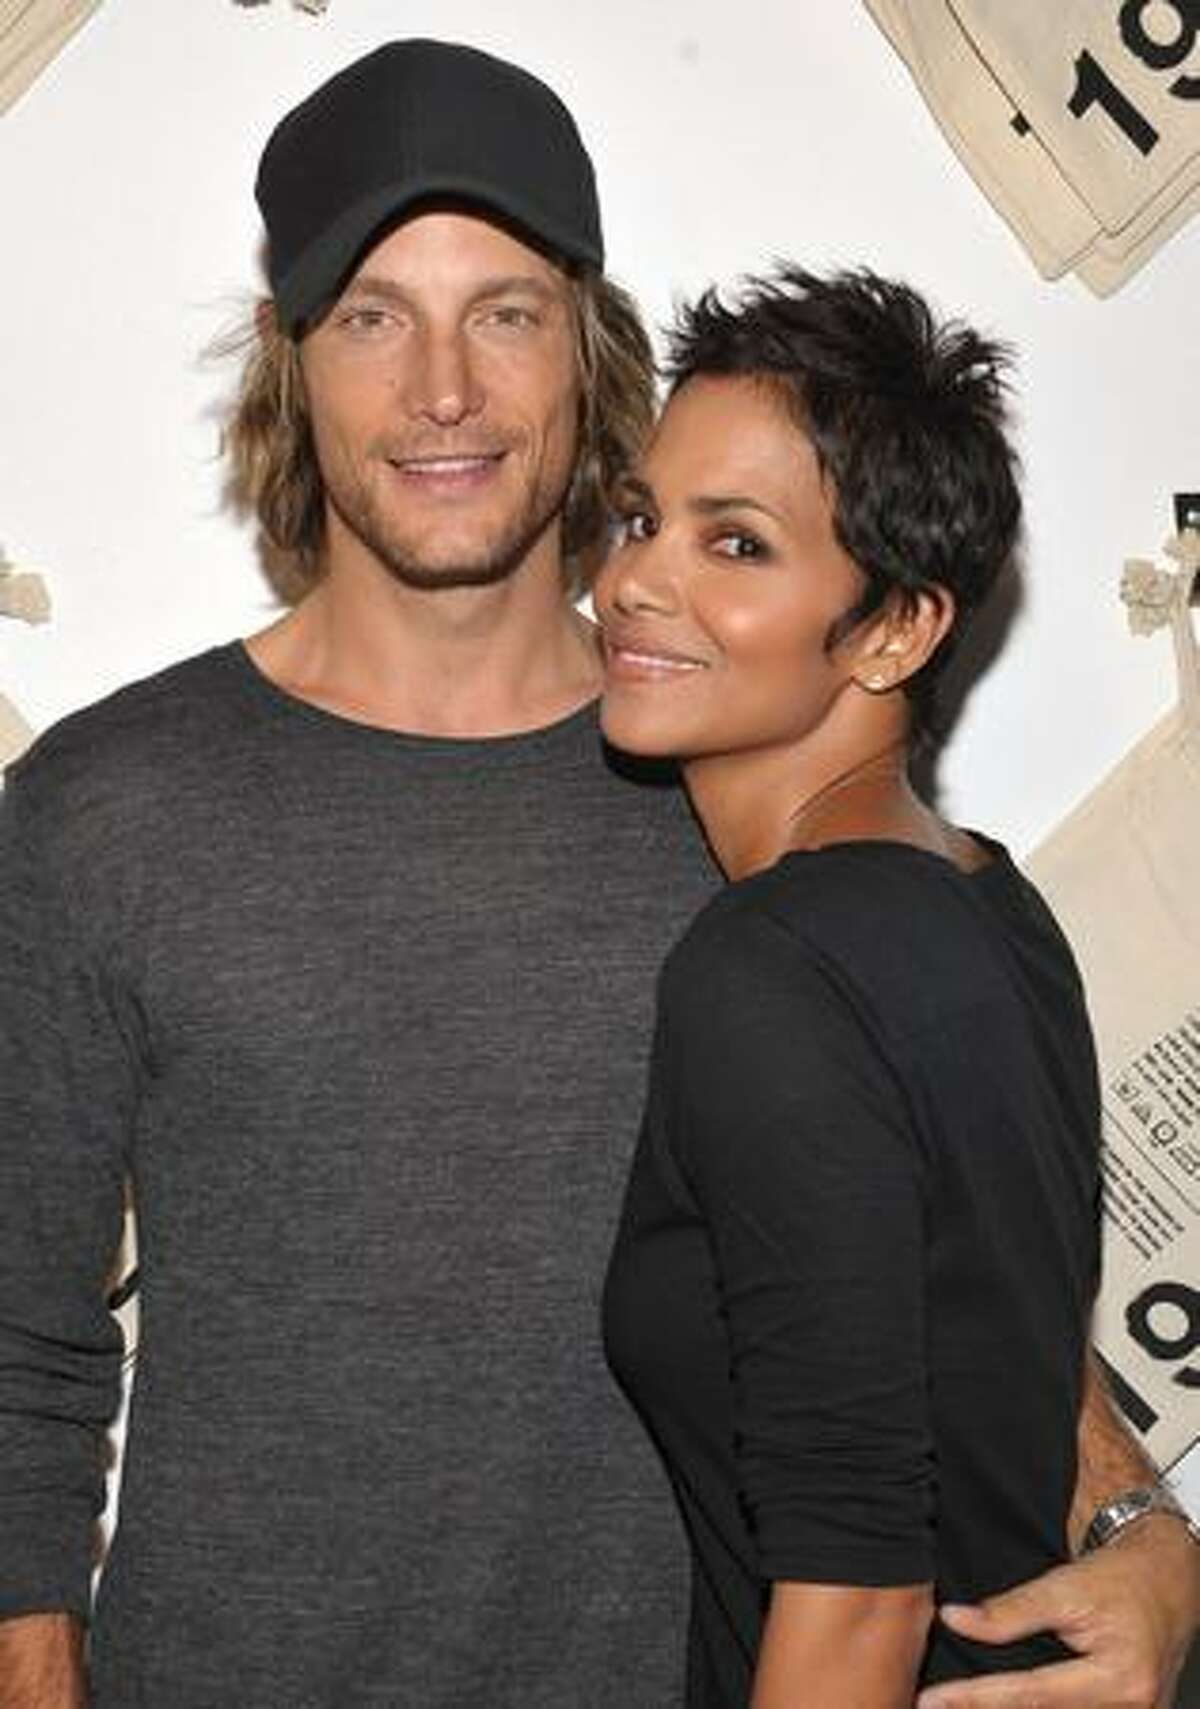 Actress Halle Berry (R) and Gabriel Aubry attend the launch event for Gap's 1969 Jean Shop on Robertson Blvd at their 1969 Jean Shop in West Hollywood, California.